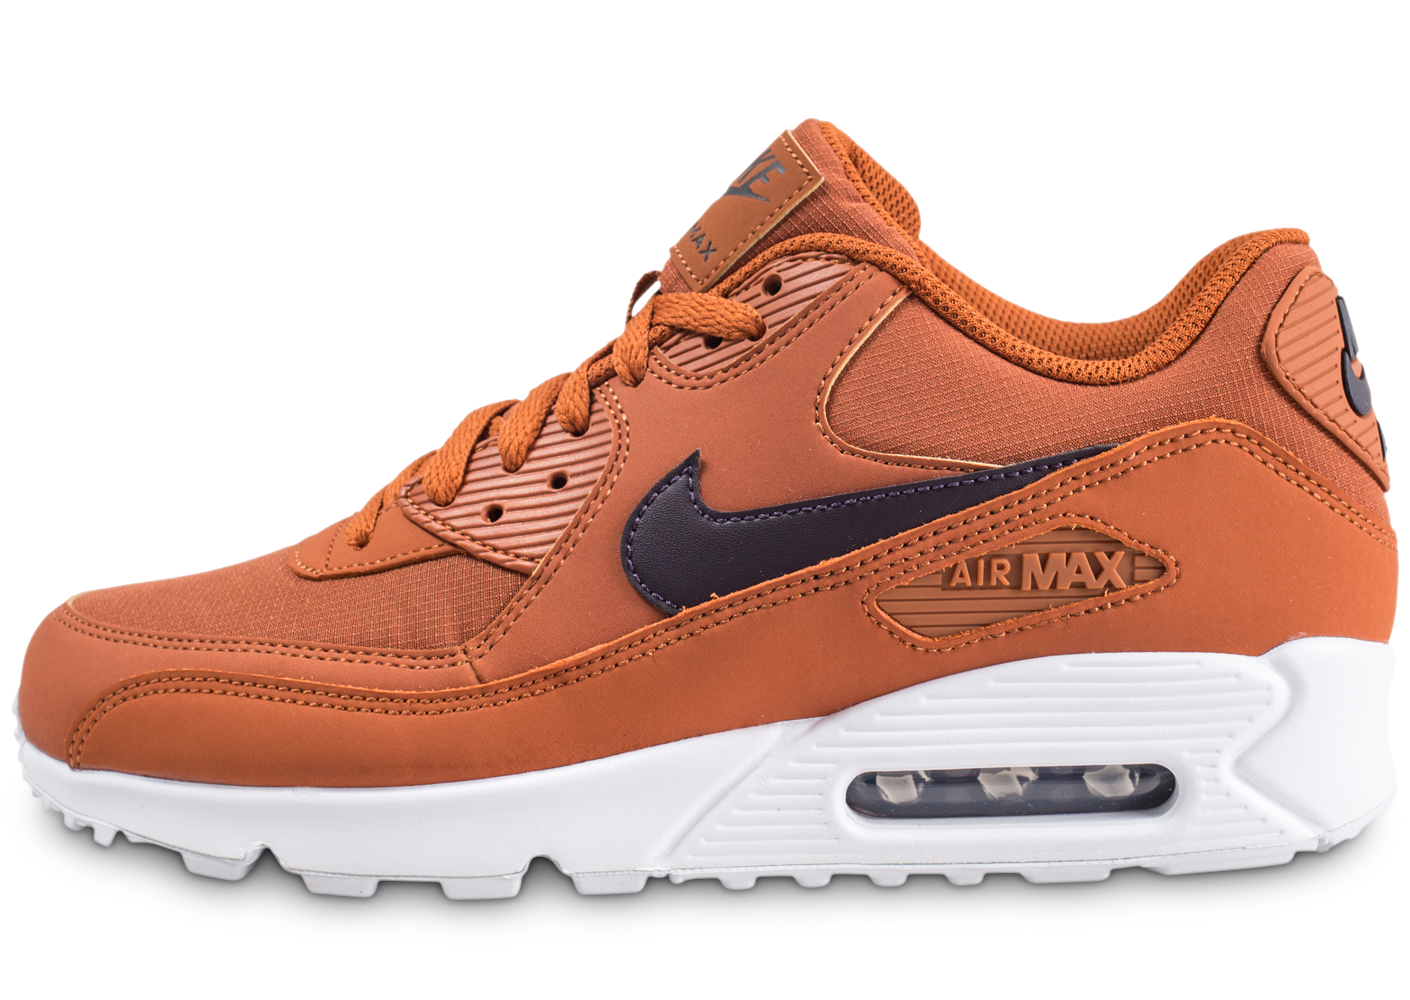 f520564a94a Nike Air Max marron jusqu à - 74 % - Pureshopping